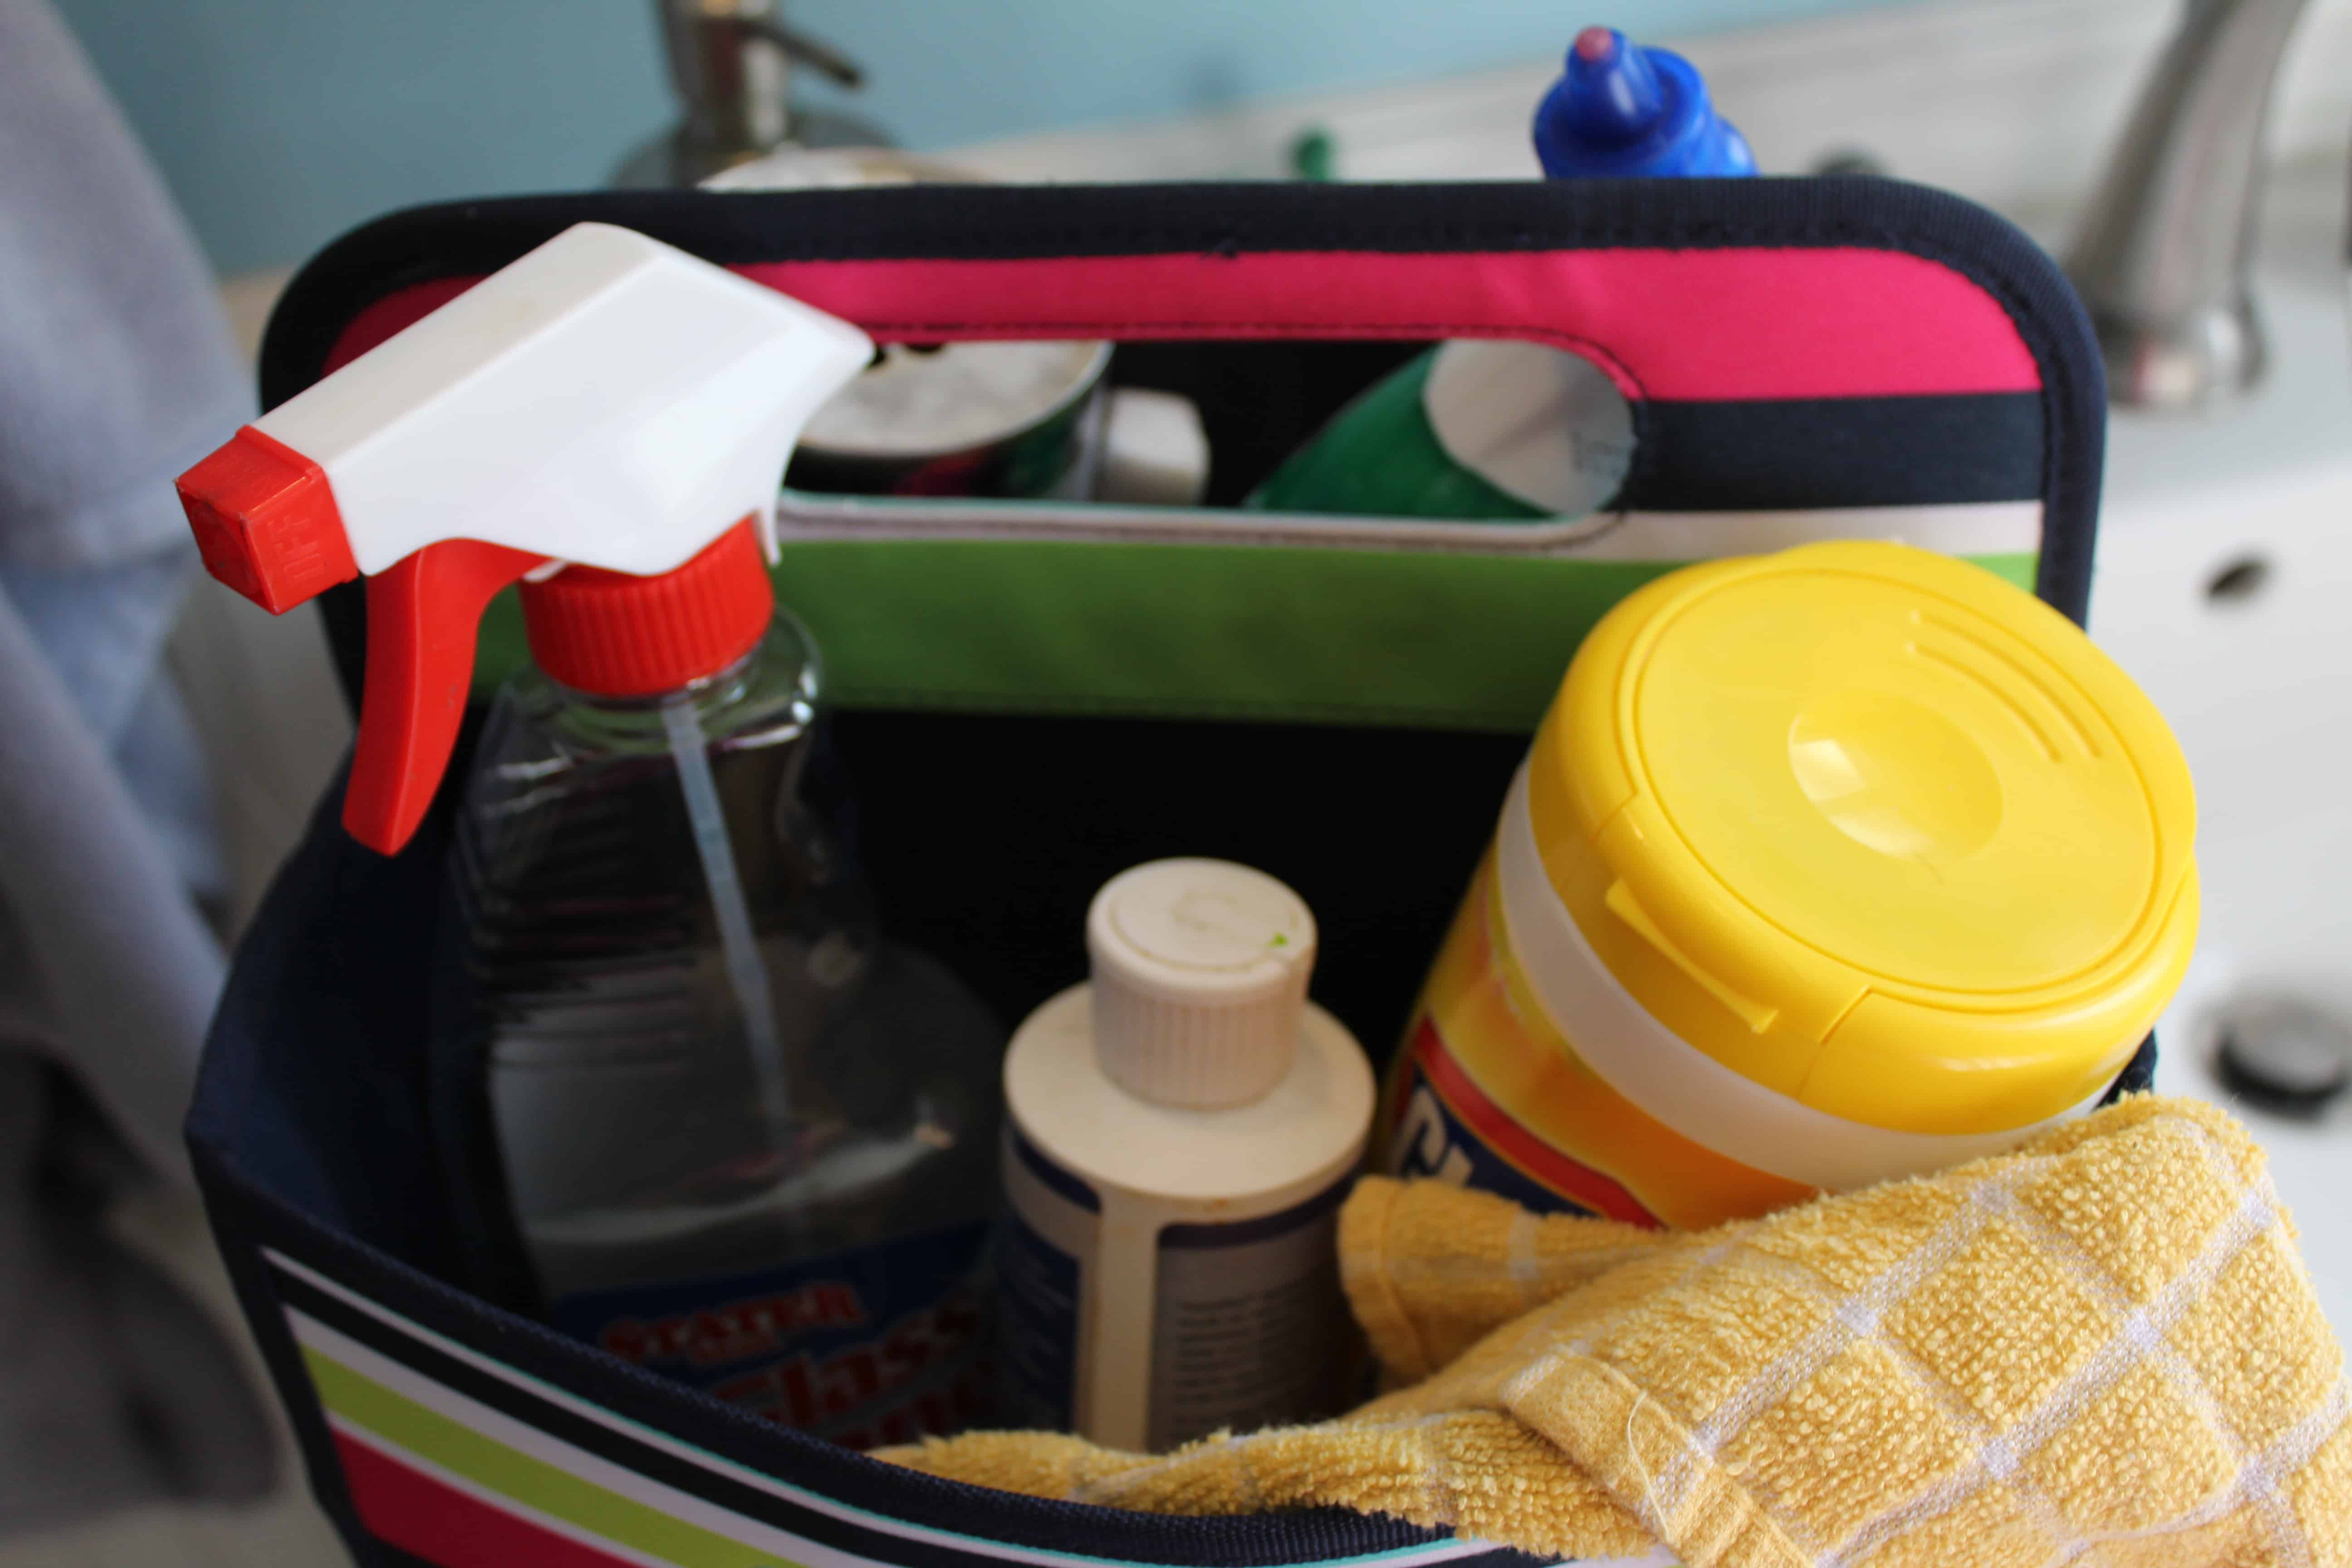 A picture of inside the bathroom caddy bag. A bottle of glass cleaner and a container of clorox wipes are inside with other cleaners and a yellow cleaning rag.